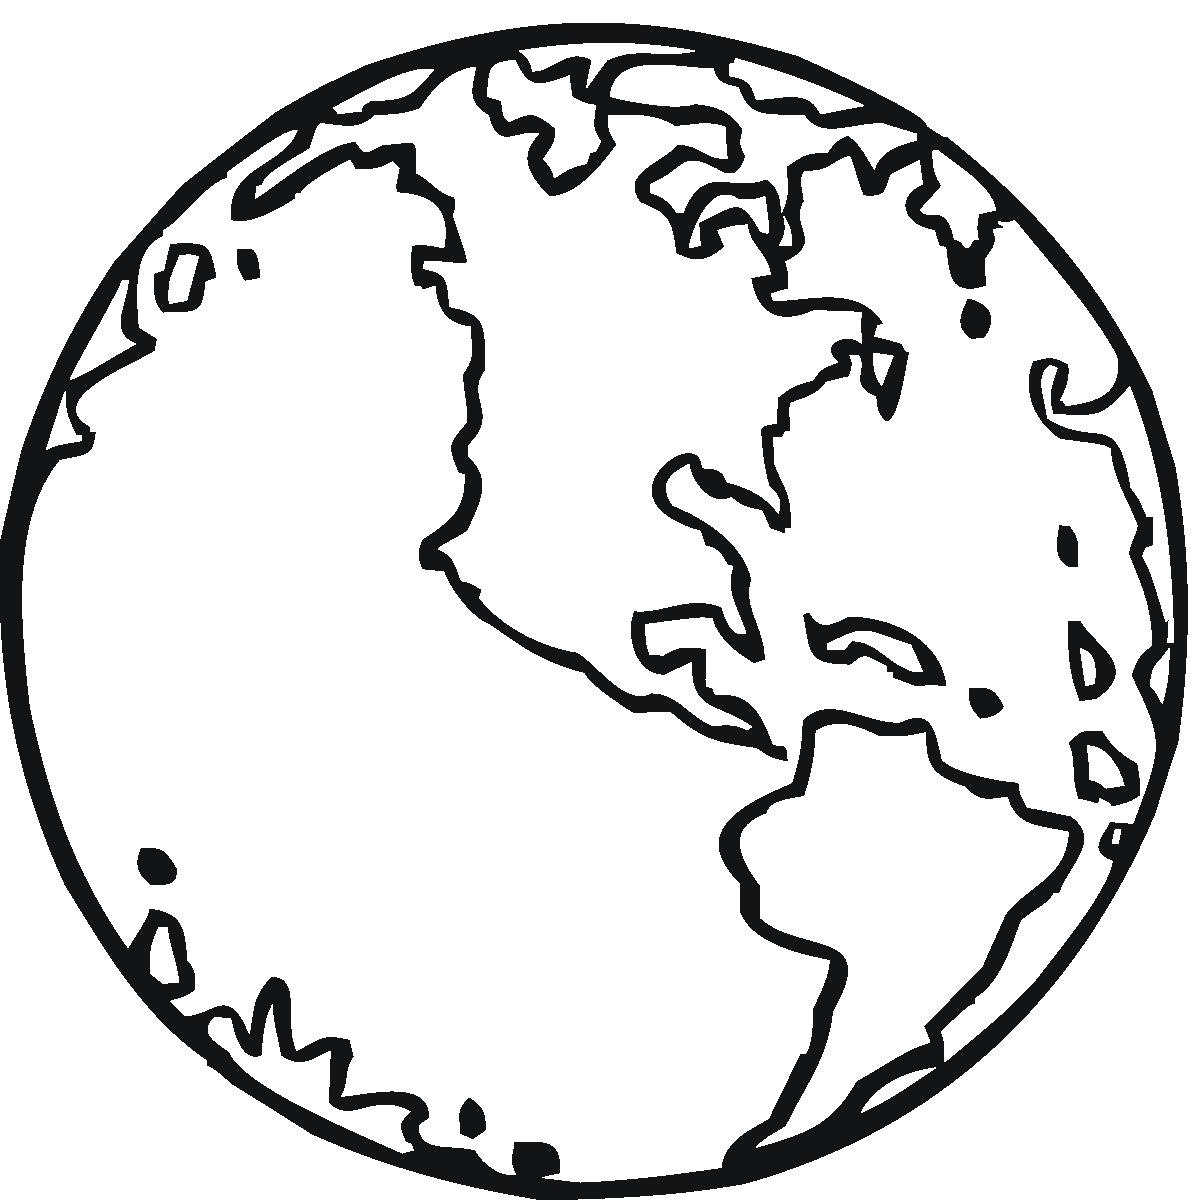 Earth Coloring Pageprintablecoloring Pages